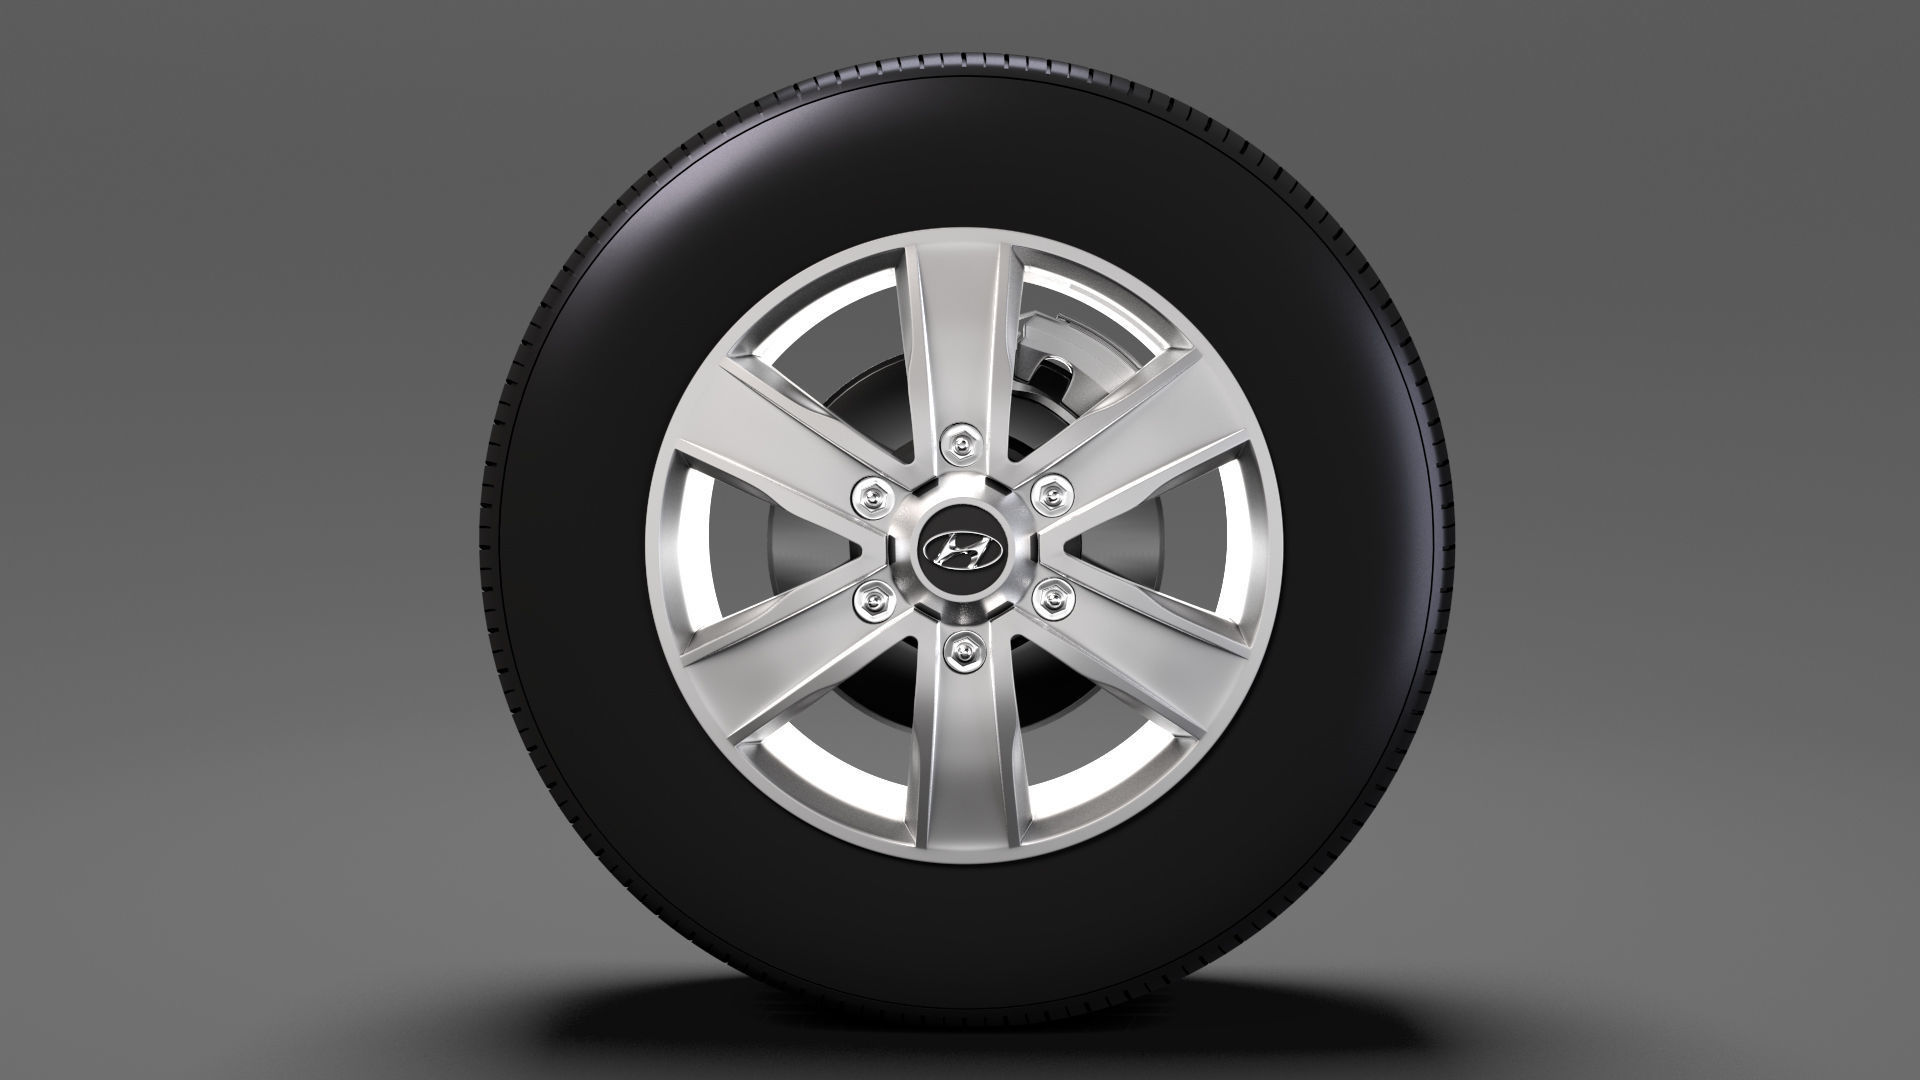 Hyundai H350 Van wheel 2017